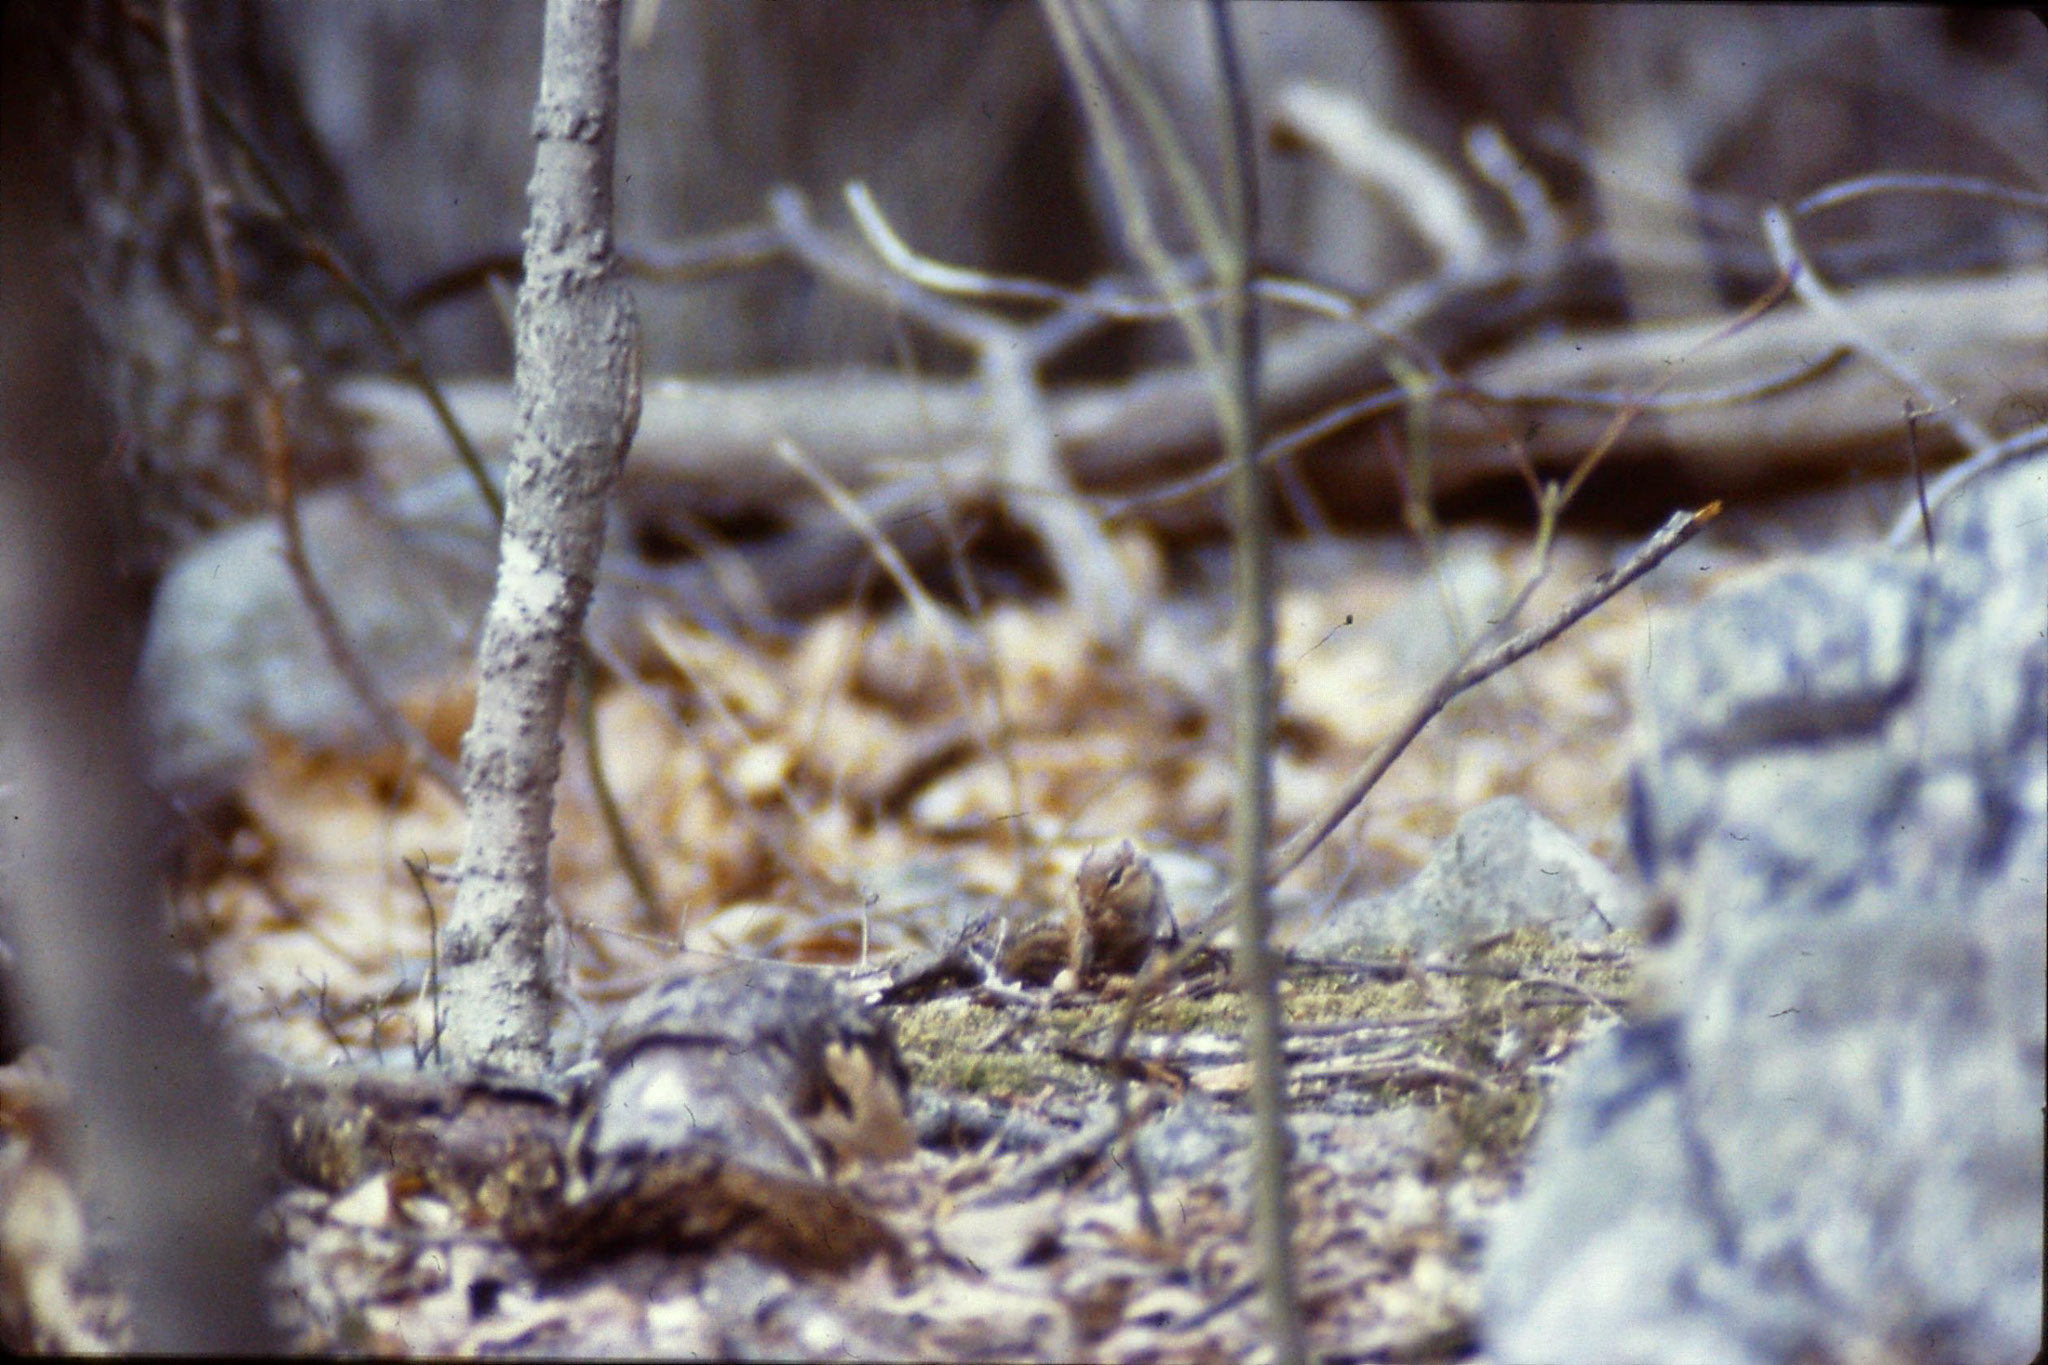 21/3/1990: 32: Seneca Rocks WV Eastern chipmunk